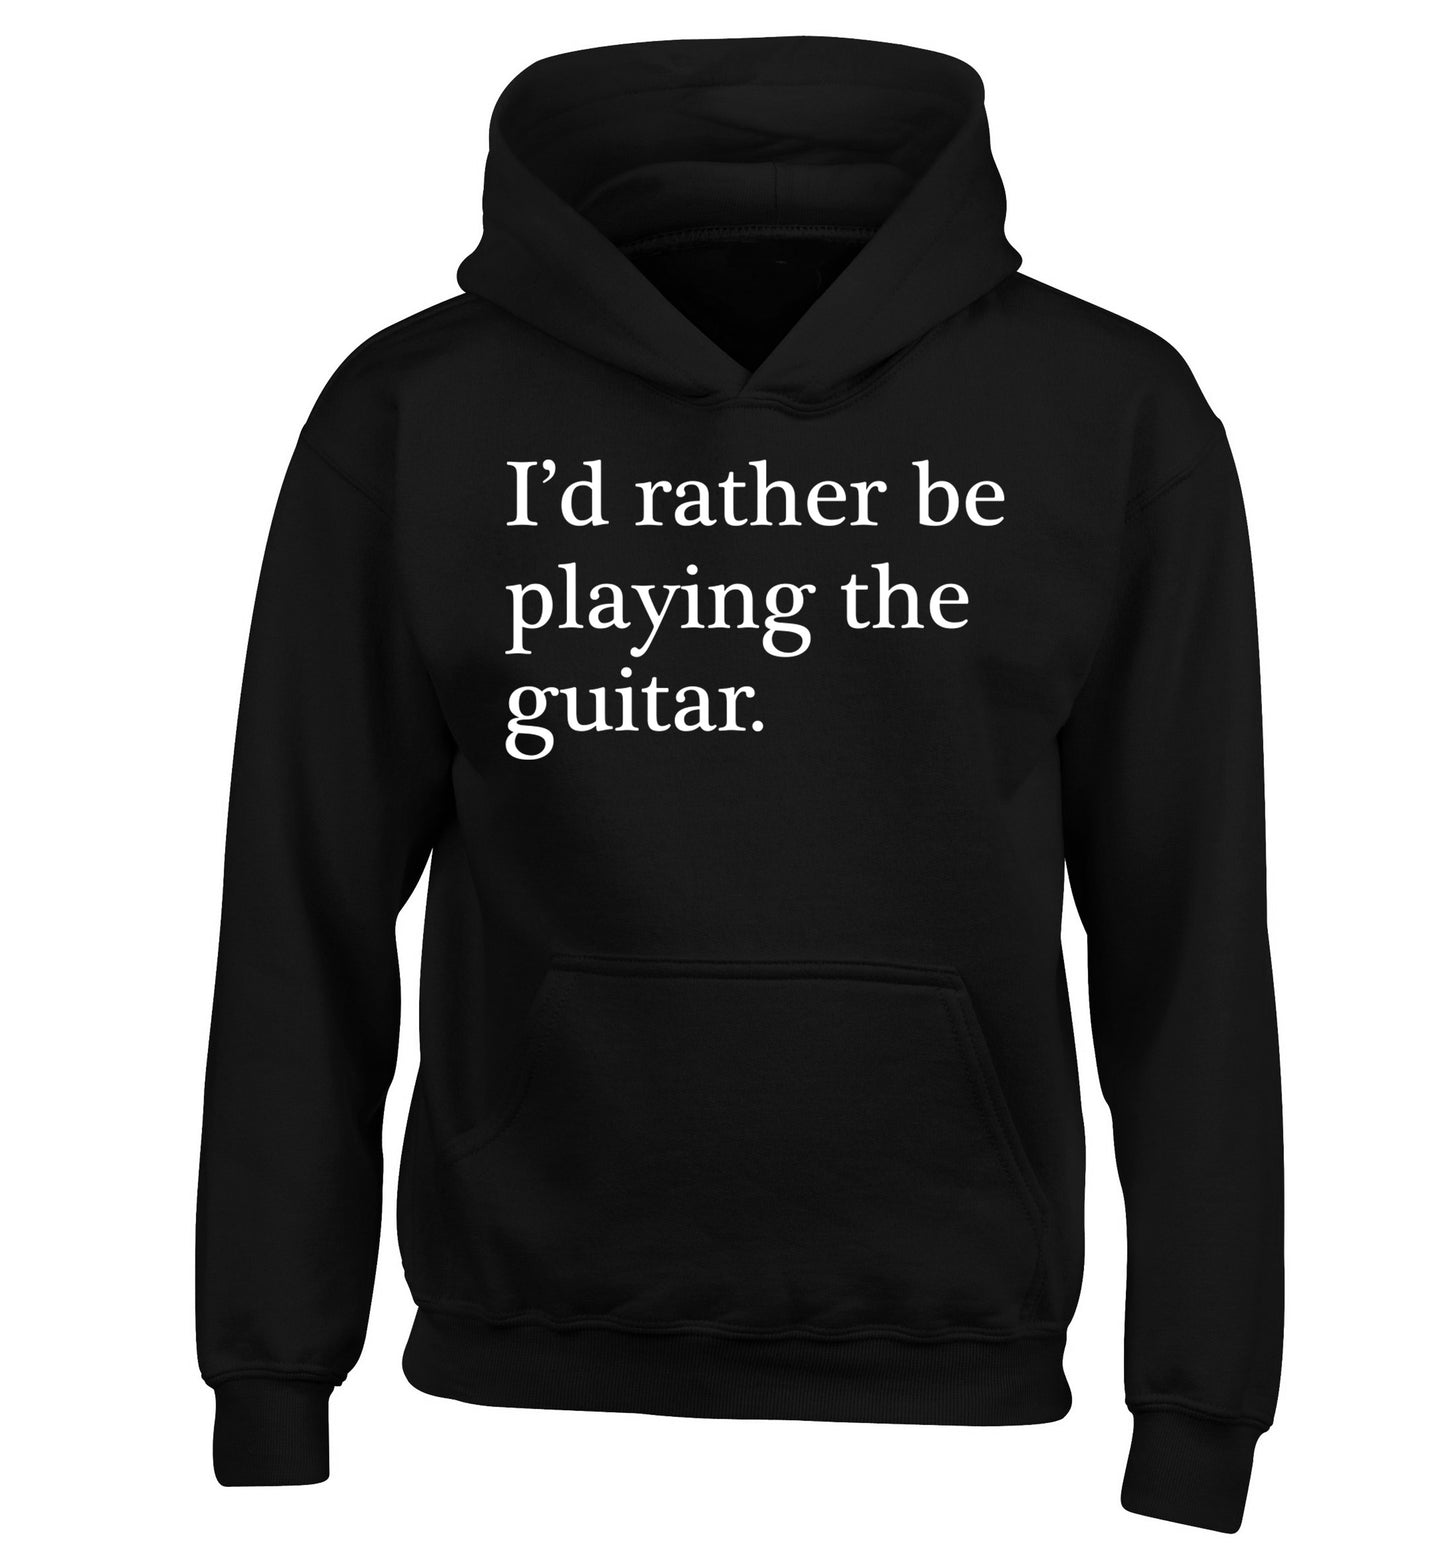 I'd rather be playing the guitar children's black hoodie 12-14 Years